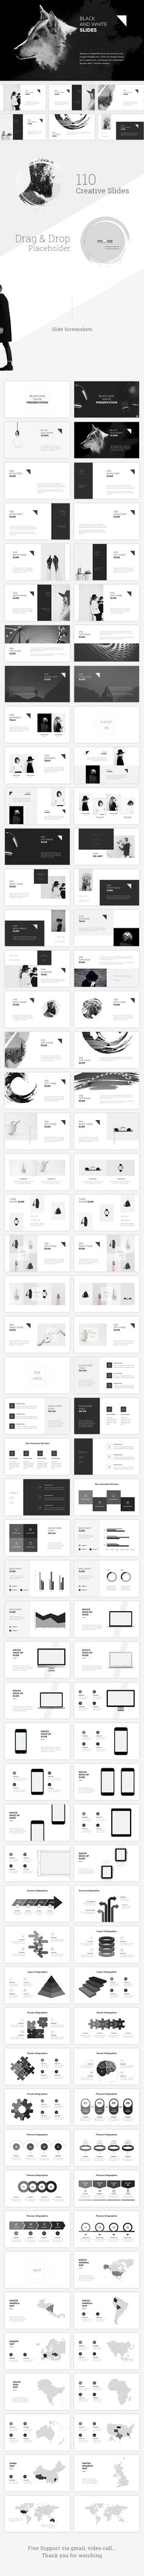 Black and White Powerpoint Template - Creative #PowerPoint Templates Download here:   https://graphicriver.net/item/black-and-white-powerpoint-template/20006597?ref=alena994